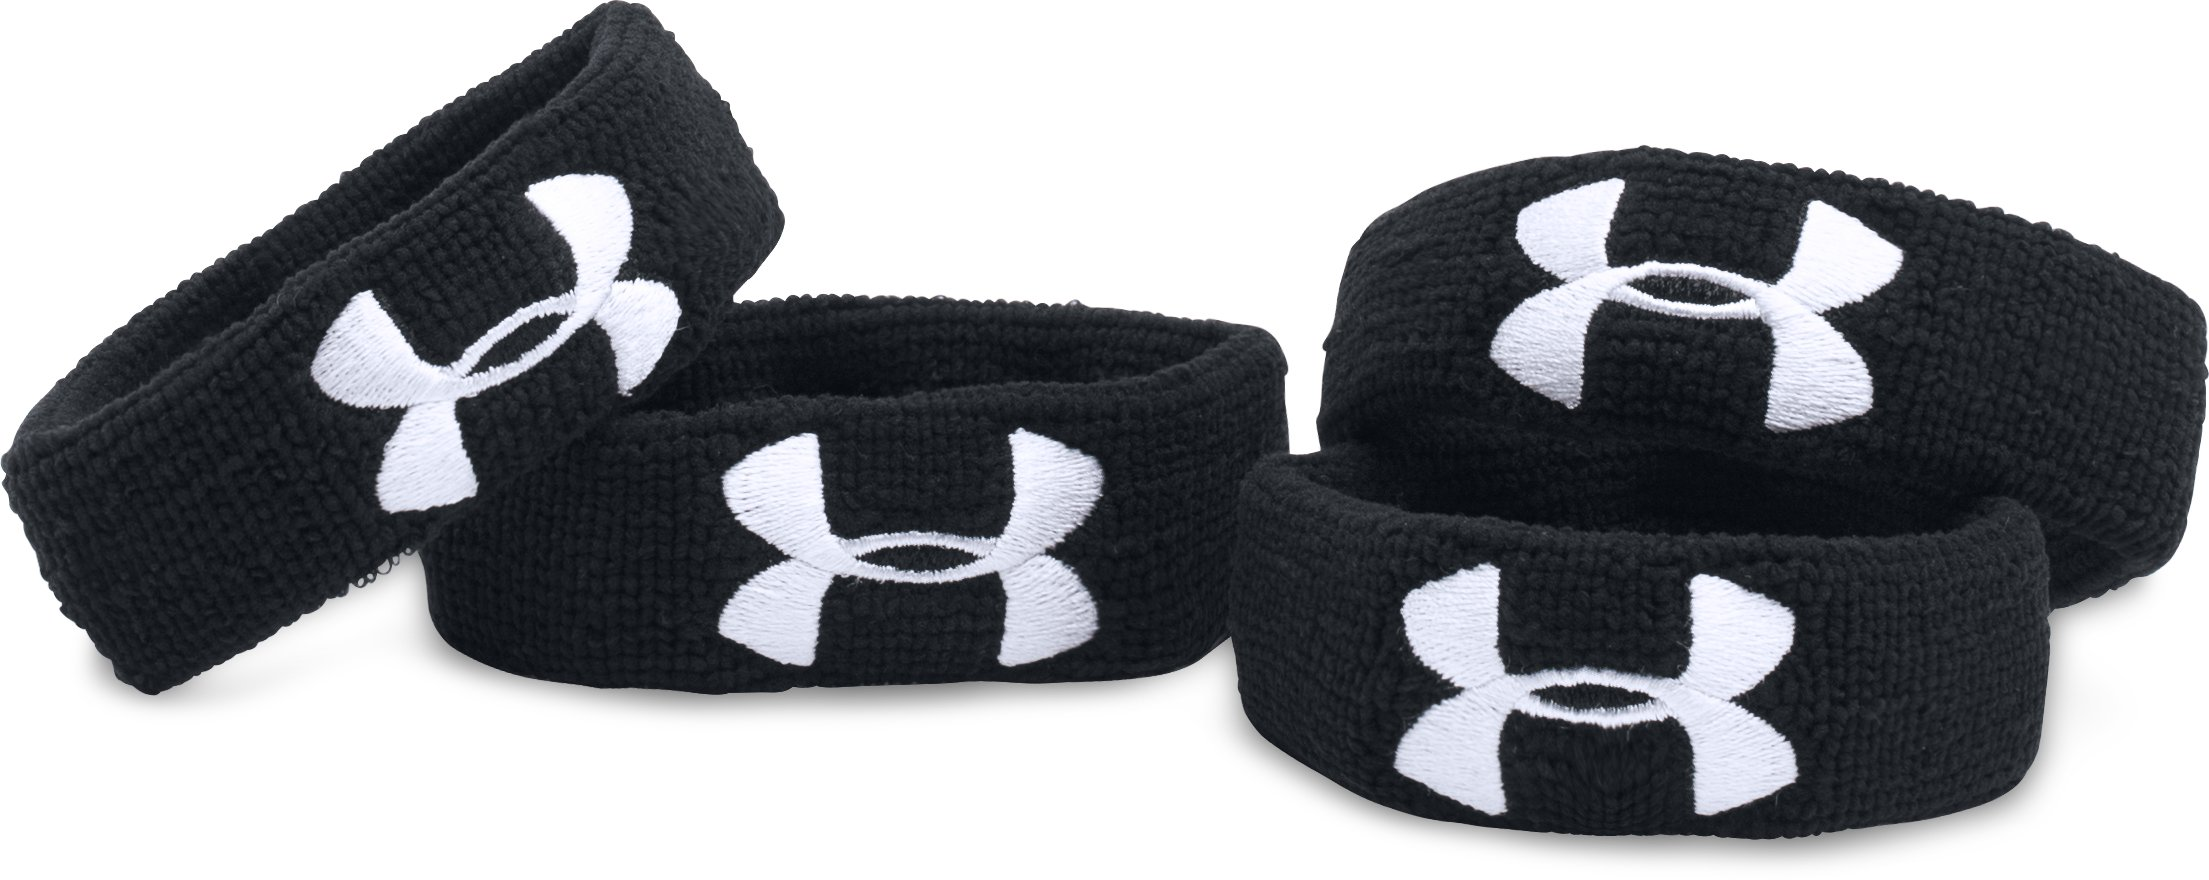 "UA 1"" Performance Wristband 4-Pack 5 Colors $12.99"